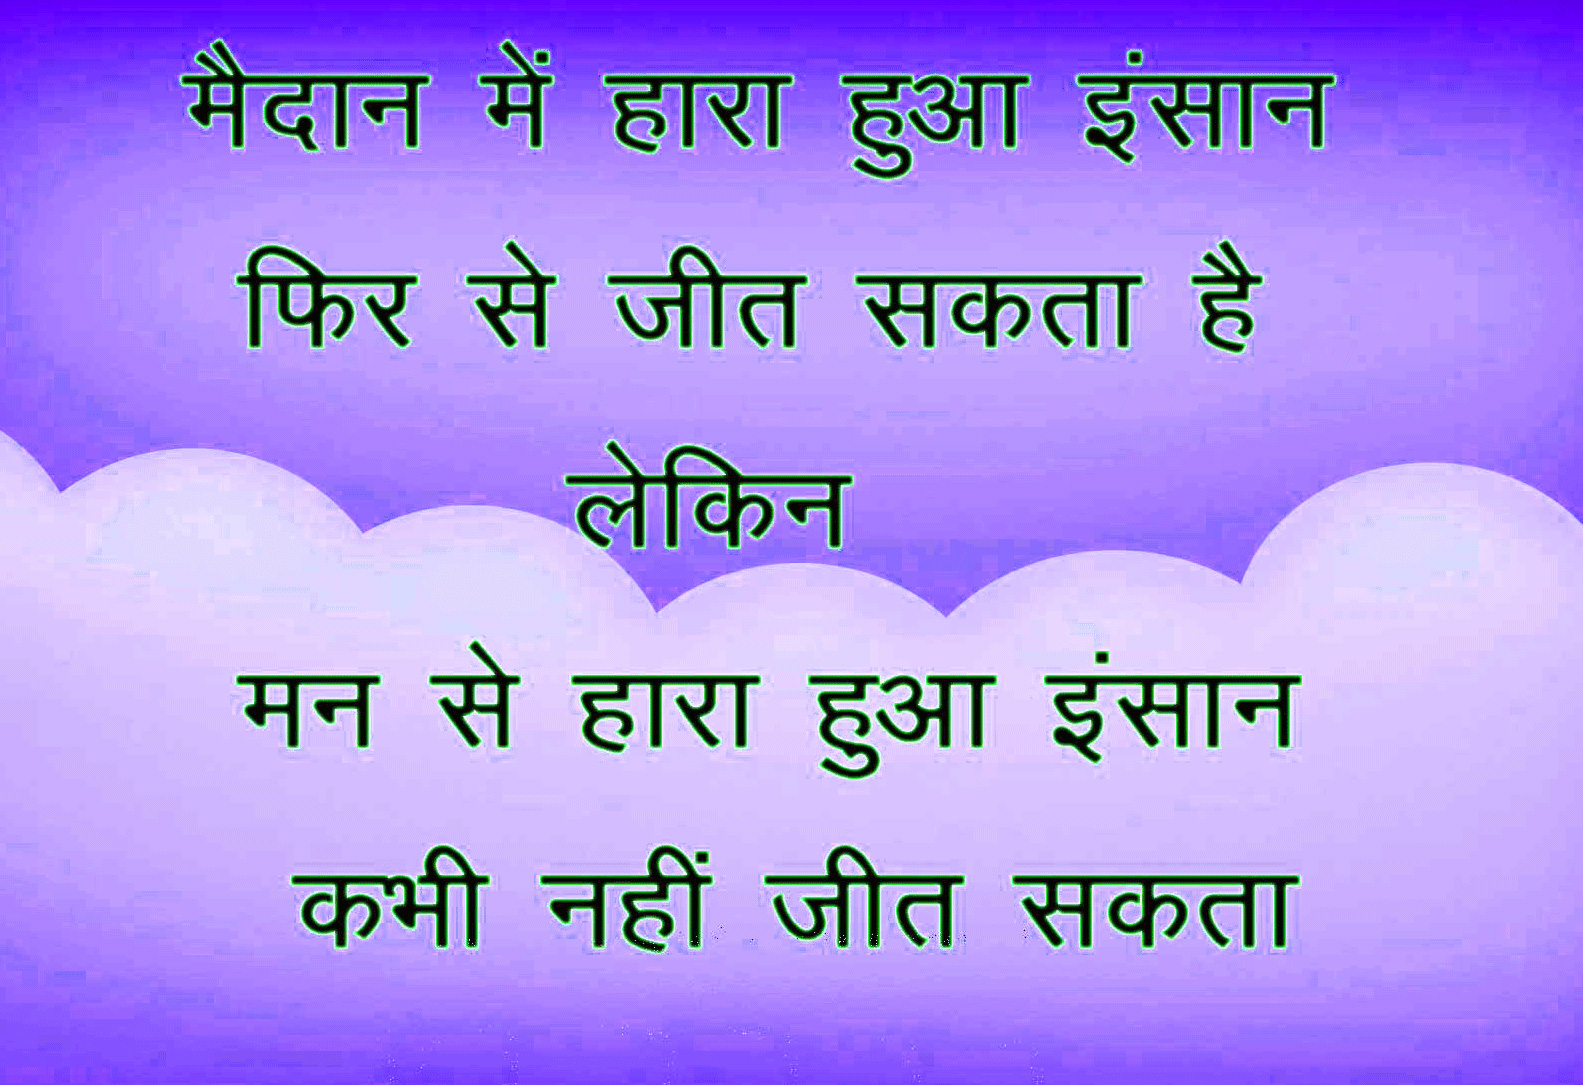 Hindi Quotes Whatsapp DP Images Download 21